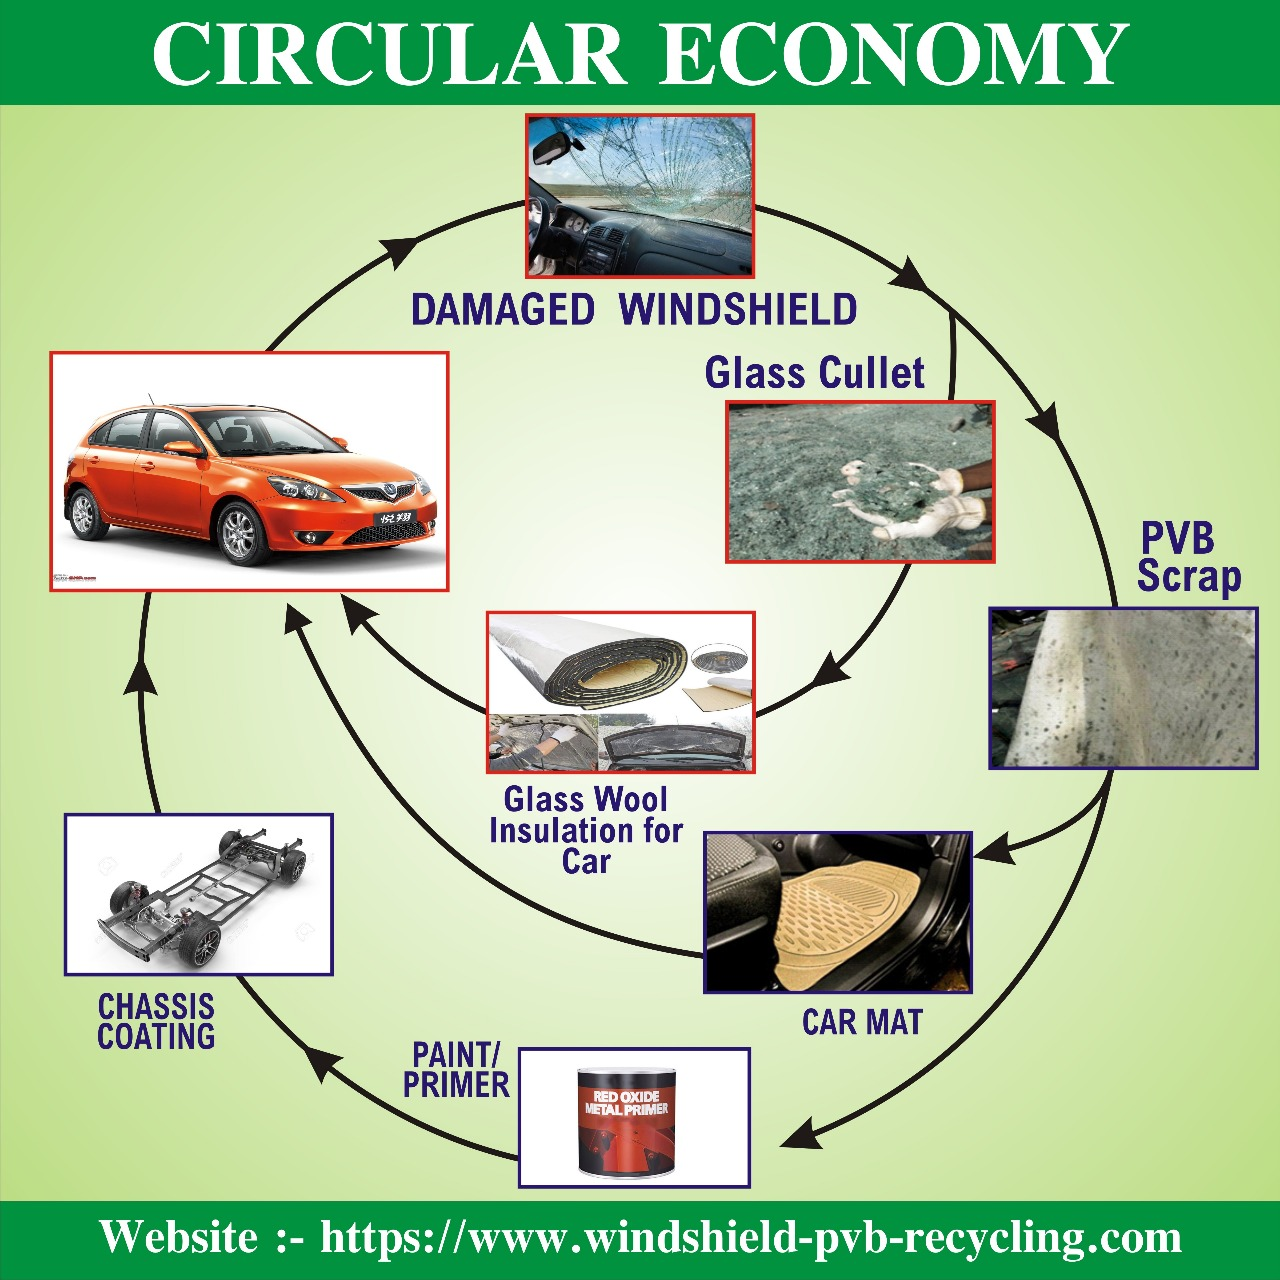 Windshield PVB Recycling